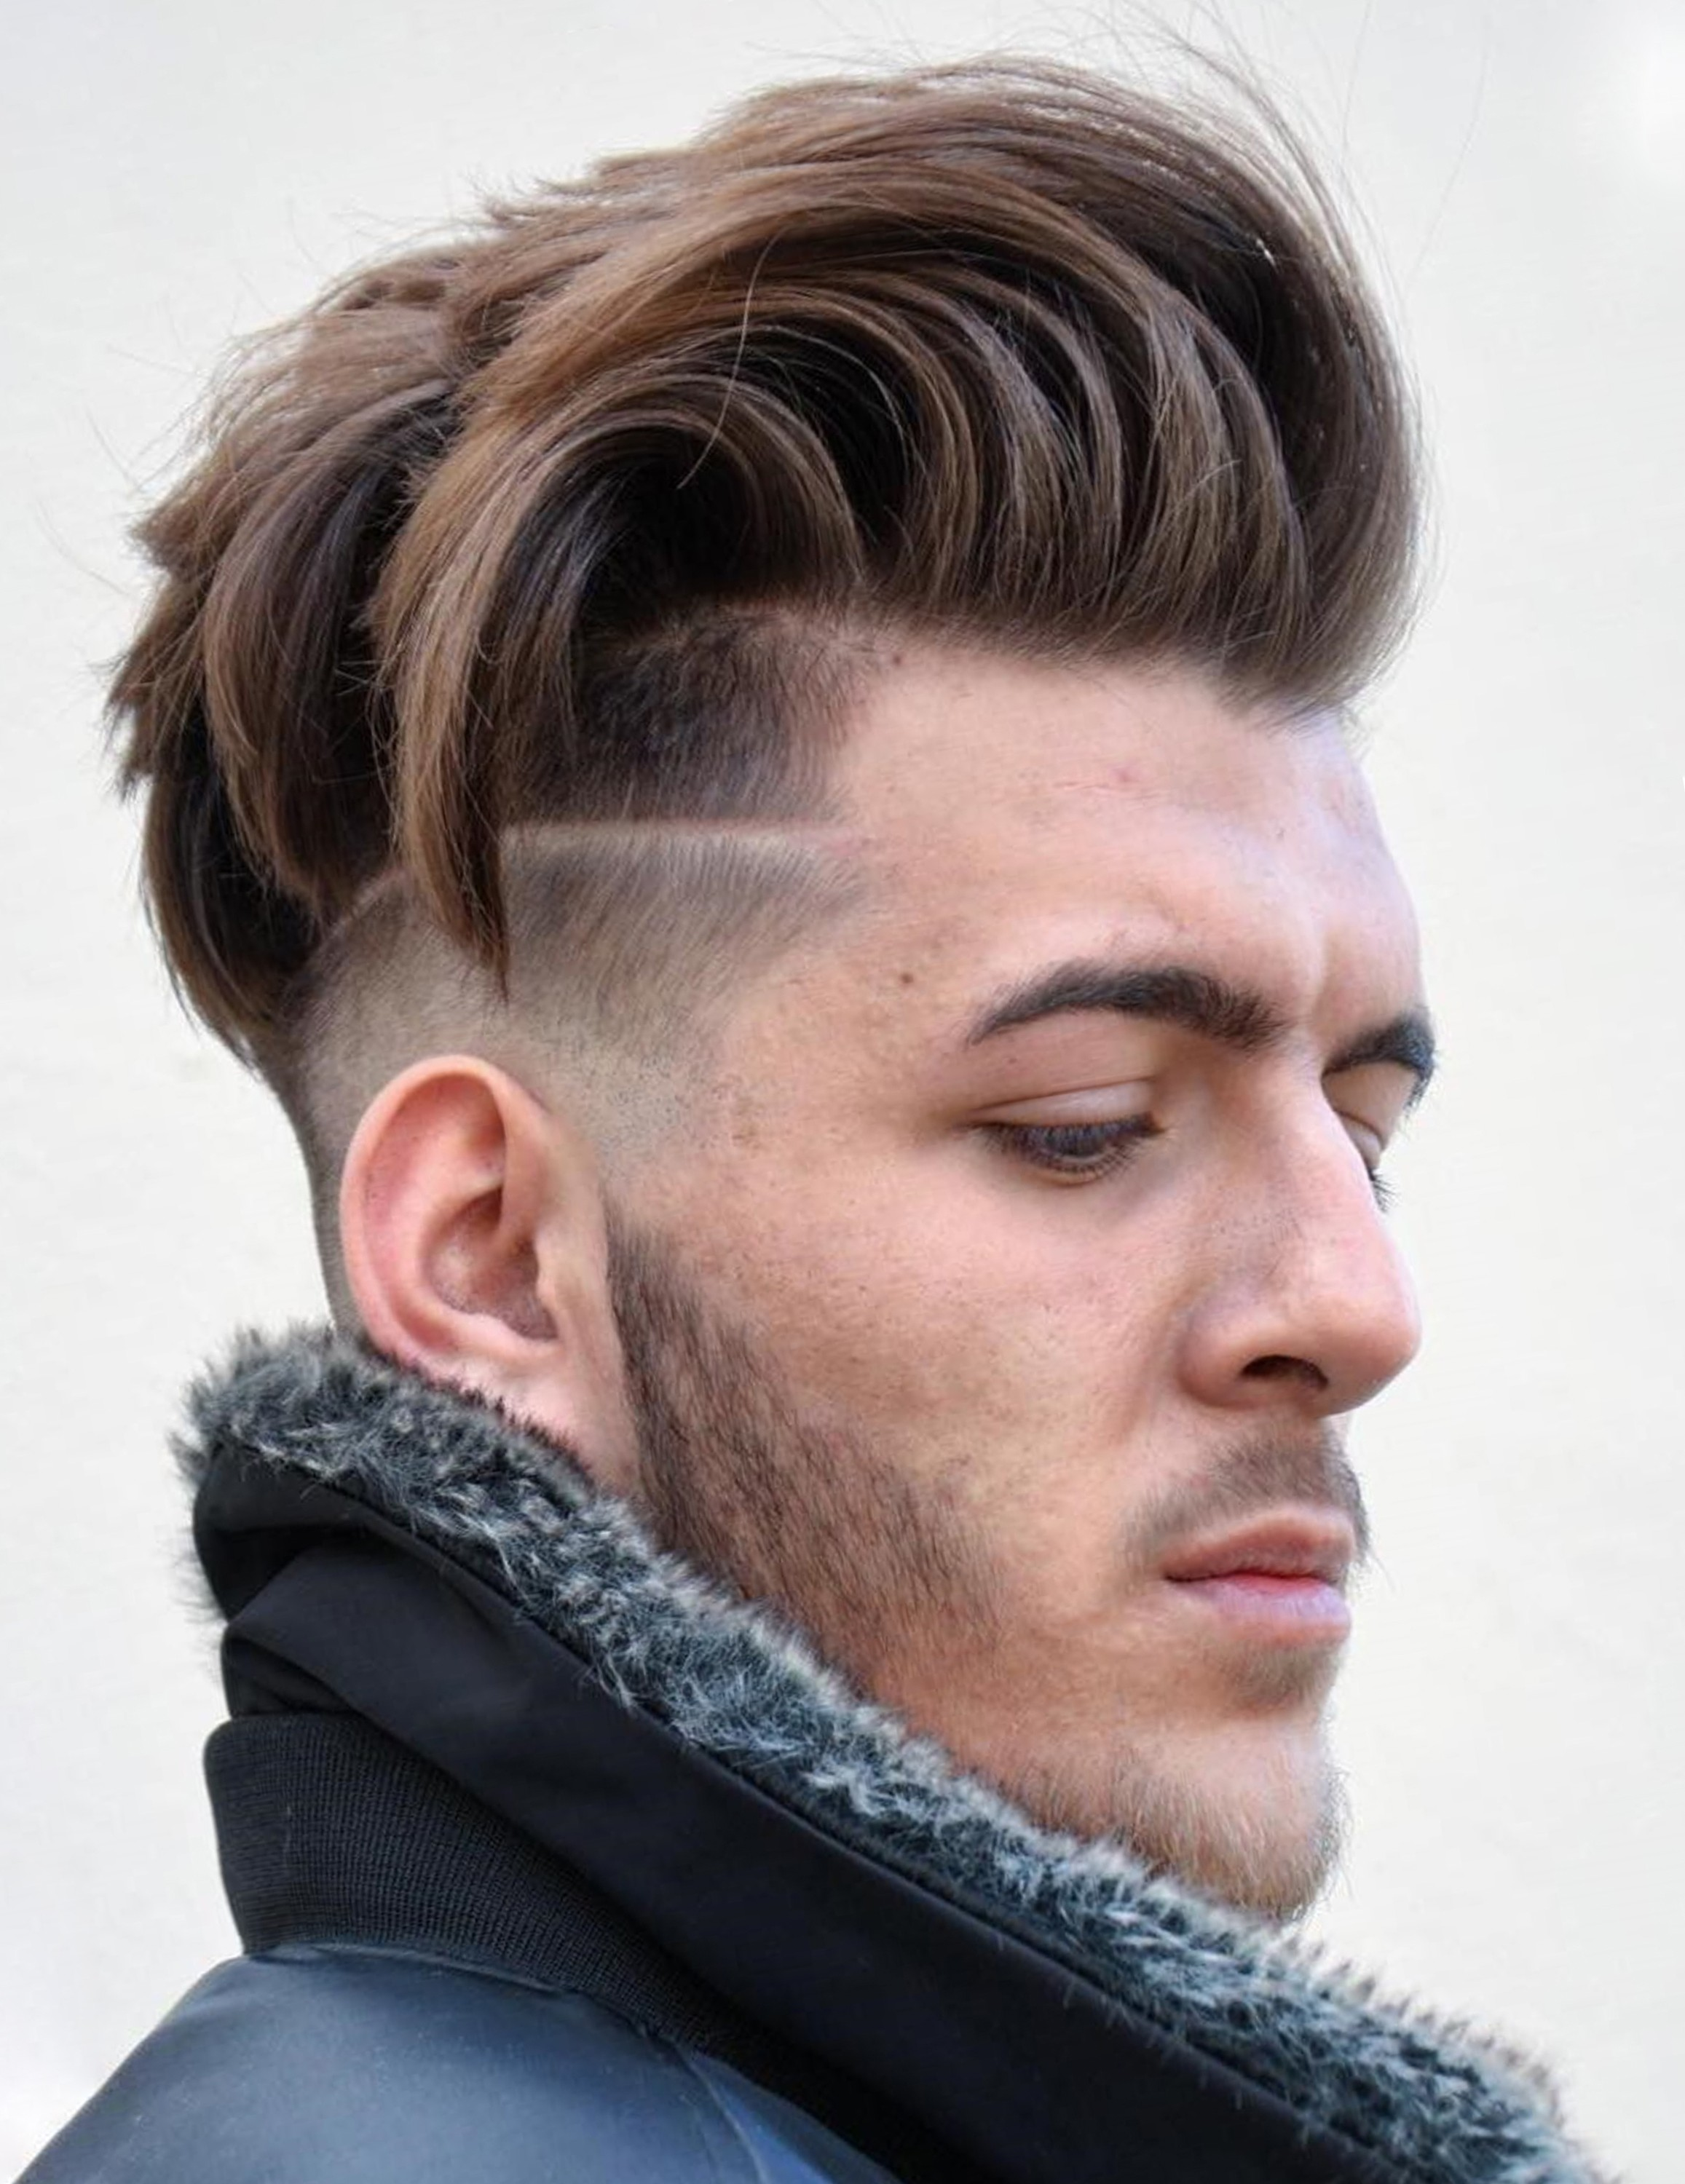 A disconnected undercut haircut for young guys.